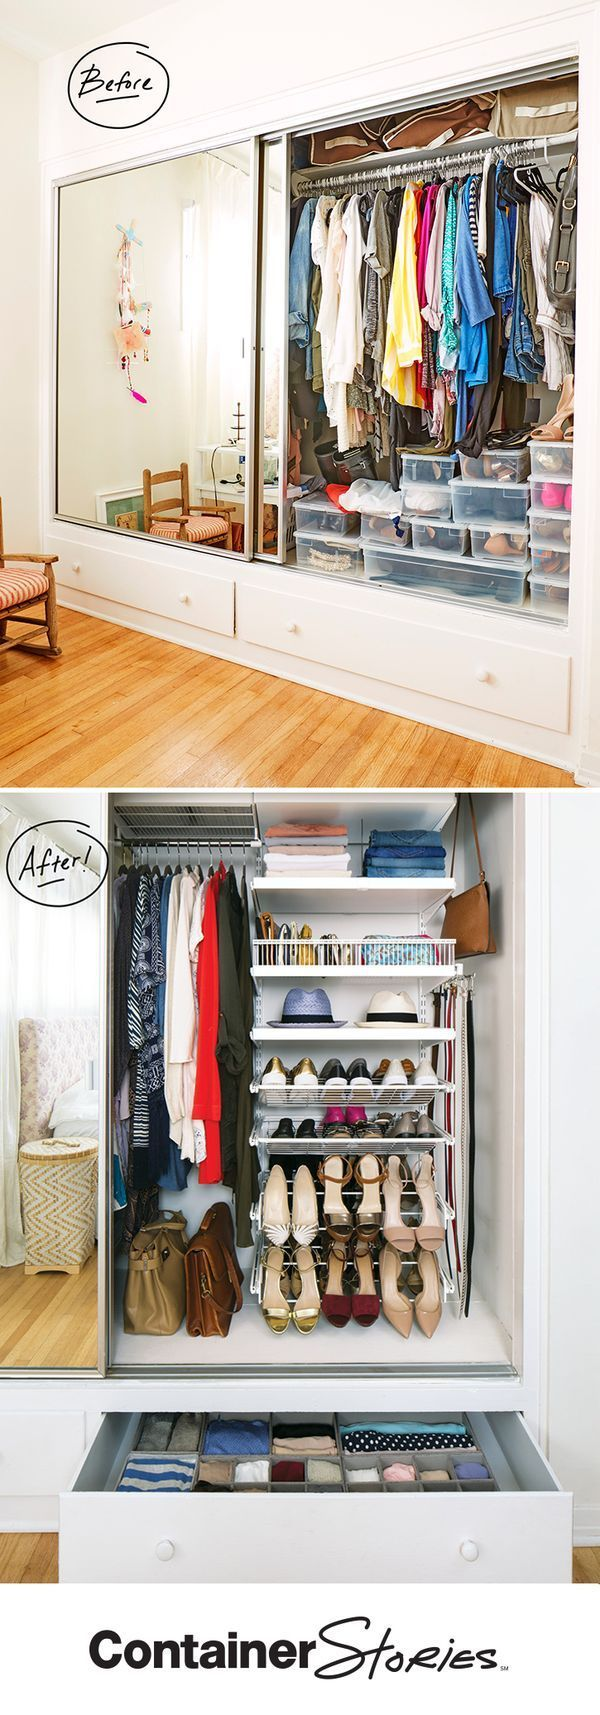 It was elfa to the rescue when Farrah and her daughter downsized from a three-bedroom house to a one-bedroom apartment. Gliding Shoe Racks organized all her shoes, while Decor Shelving and Shelf Baskets organized and displayed key accessories. And of course, we were able to double her hanging space! Drawer organizers turned the two jumbled drawers into effective storage space.